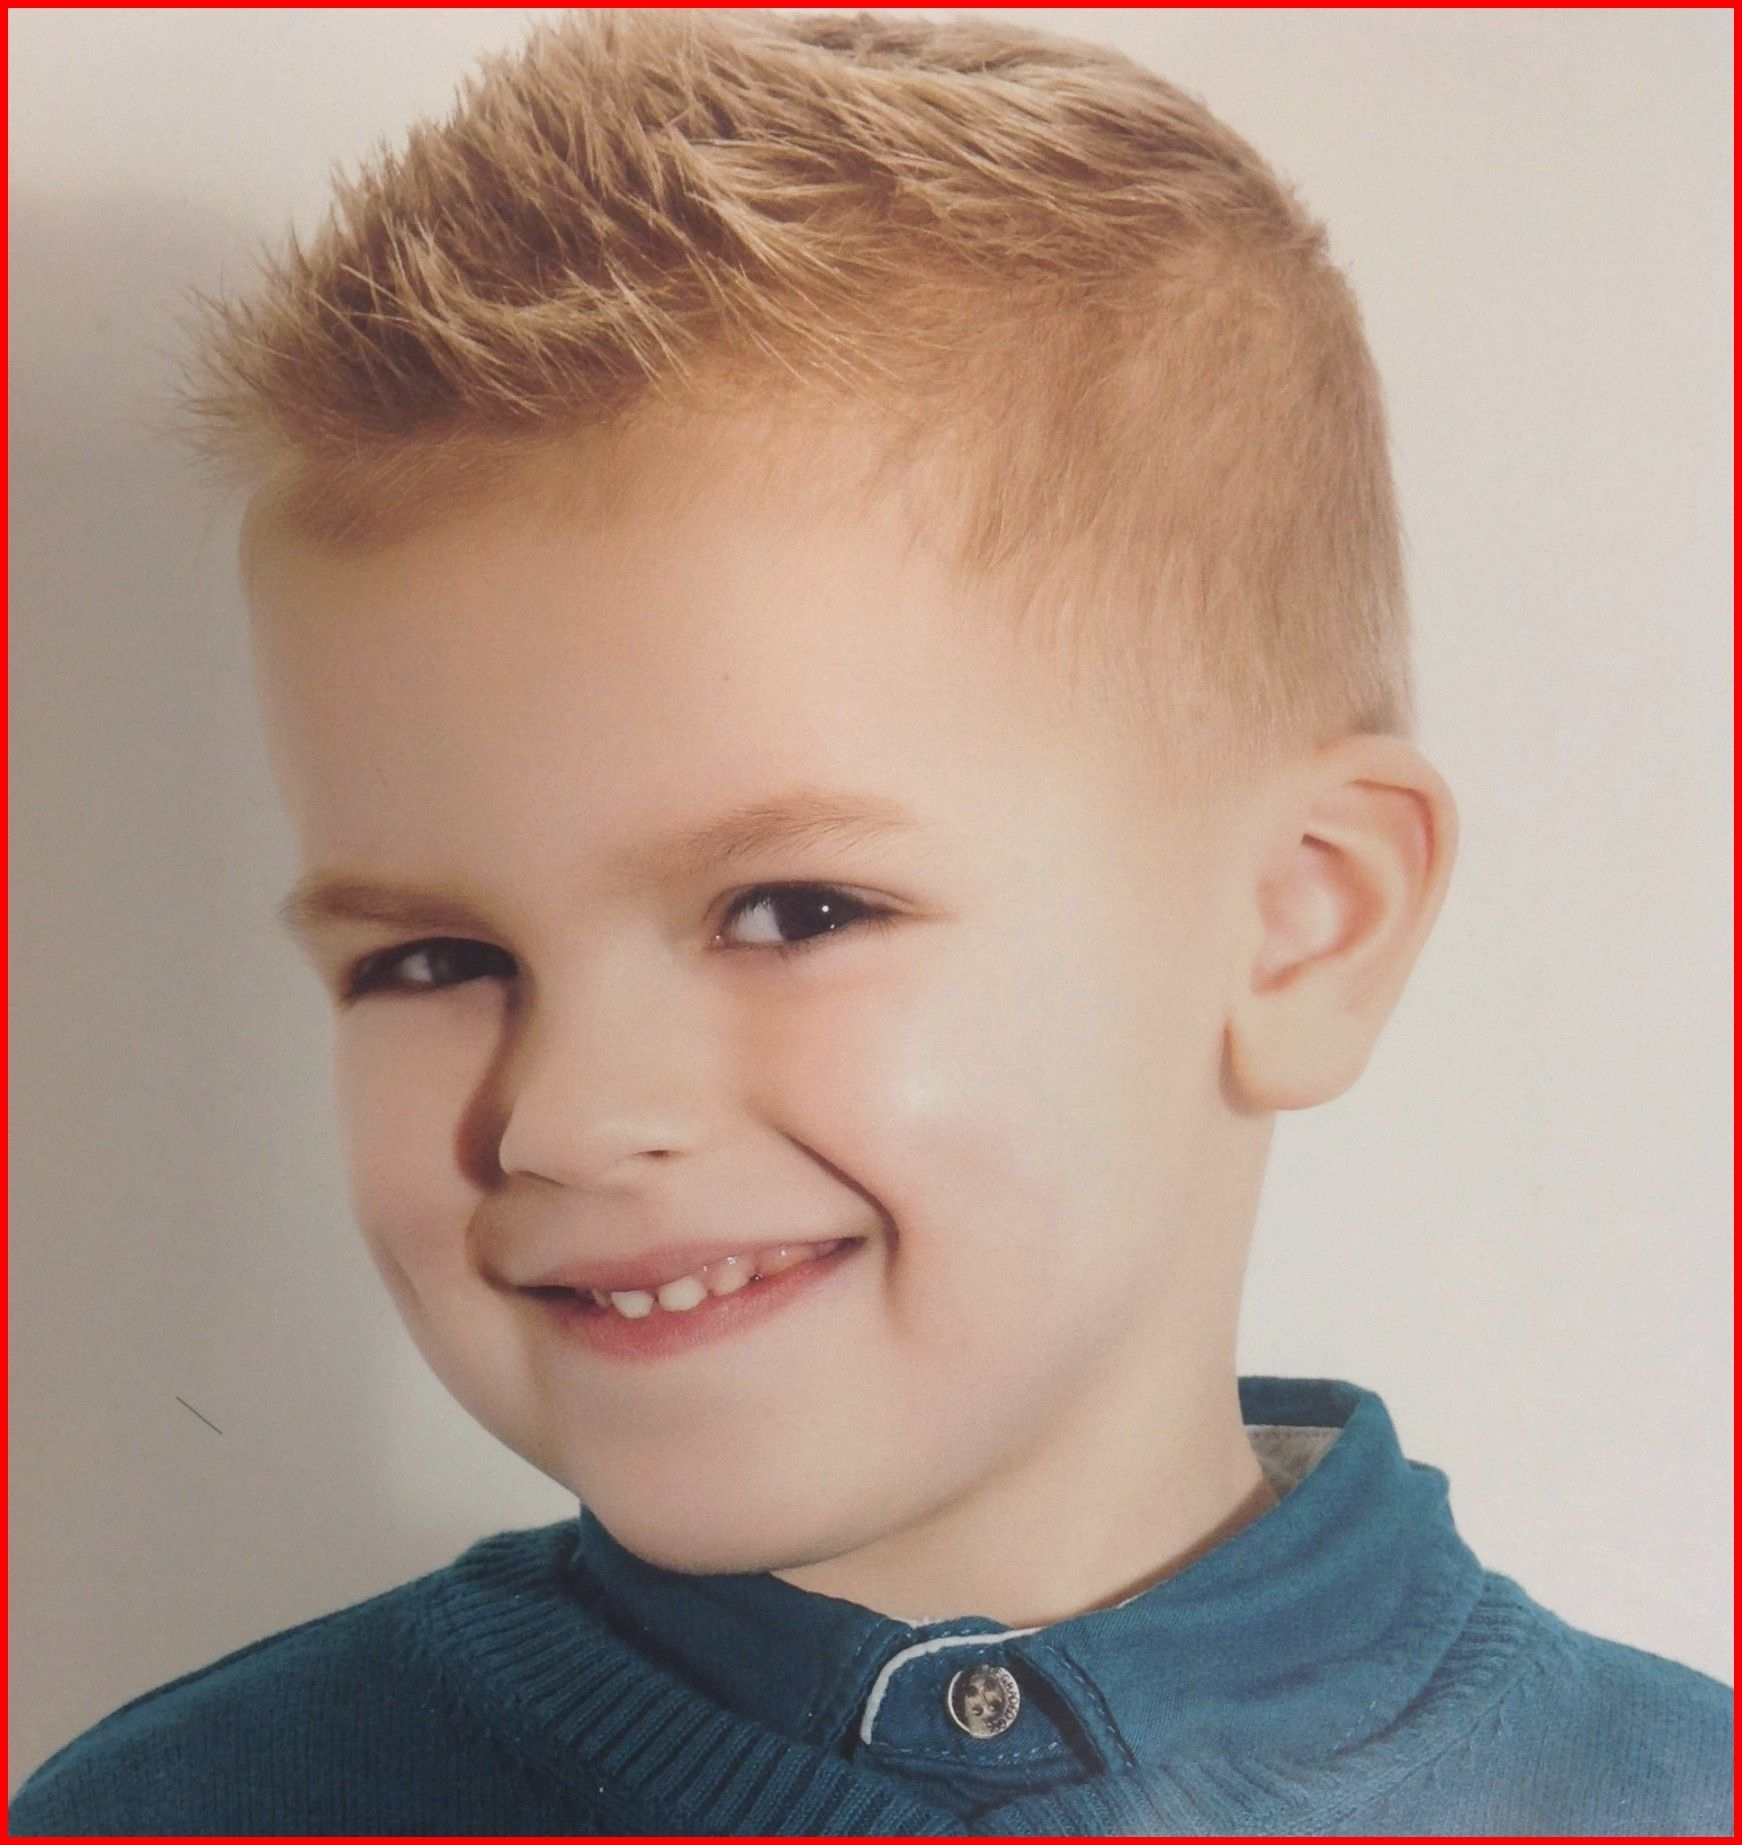 9 Year Old Boy Haircuts 2016 - The Best  | Boy Haircut In regarding 9 Year Old Boy Haircuts